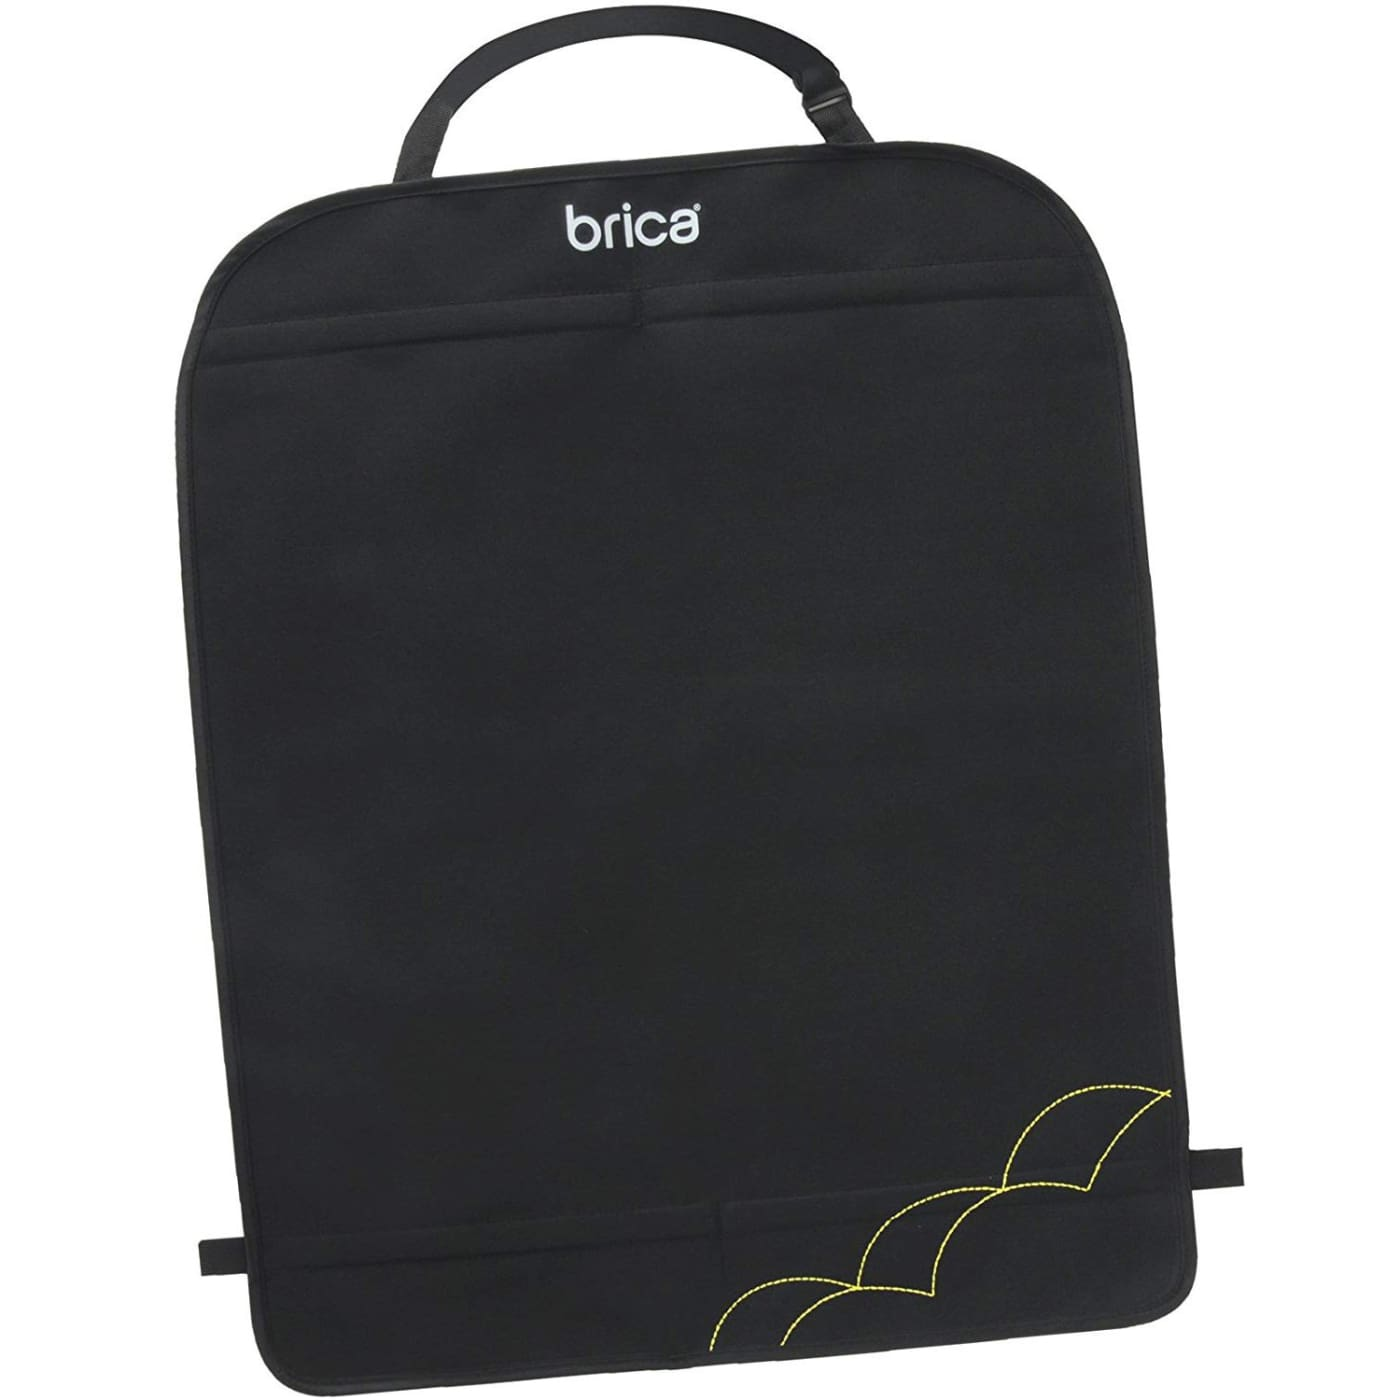 Brica Kick Mats - Black - Black - CAR SEATS - SEAT PROTECTORS/MIRRORS/STORAGE